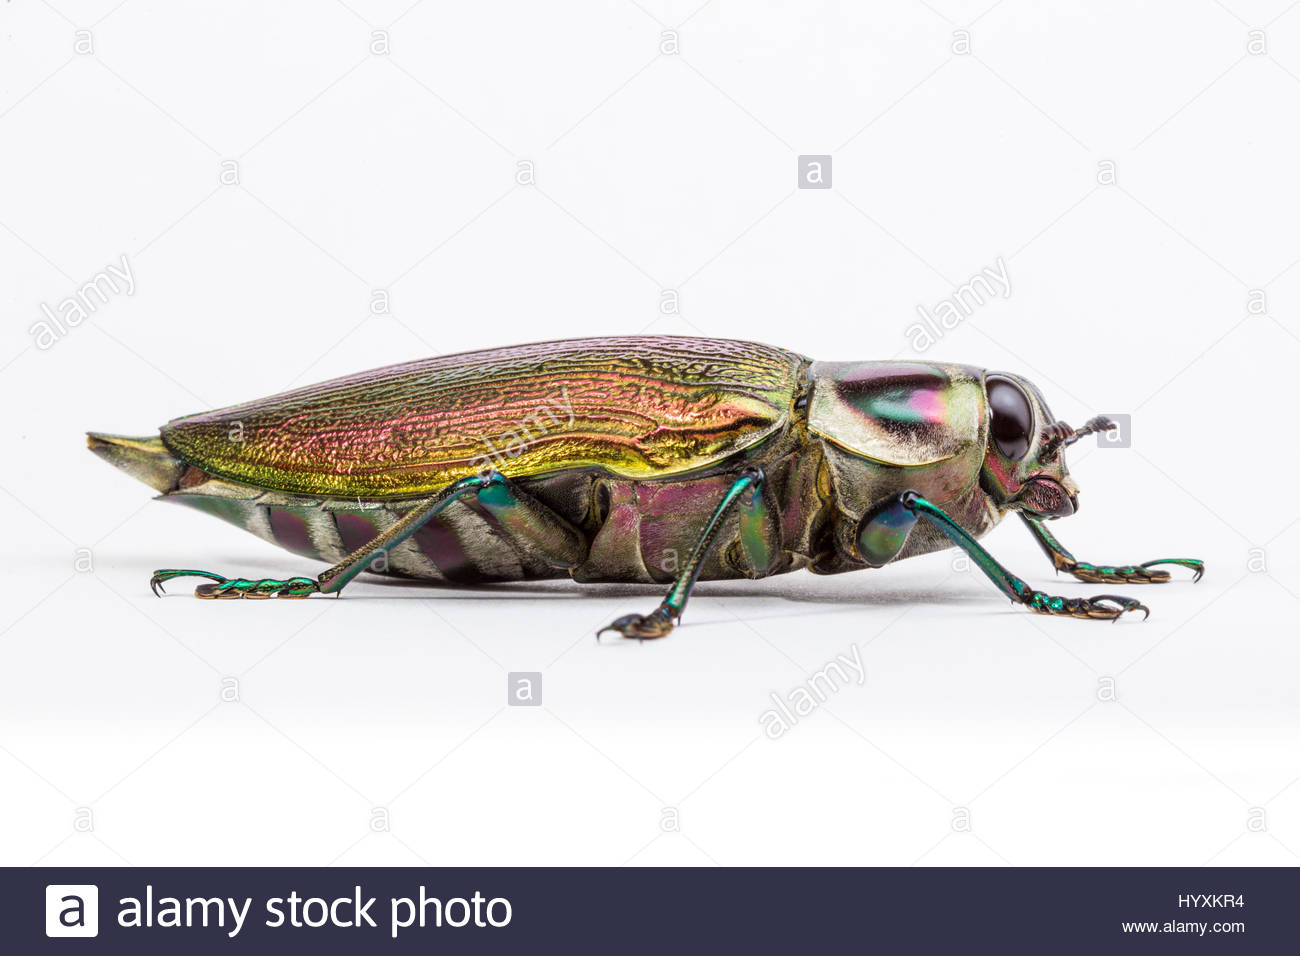 A giant metallic wood-boring beetle from the Buprestidae family. - Stock Image